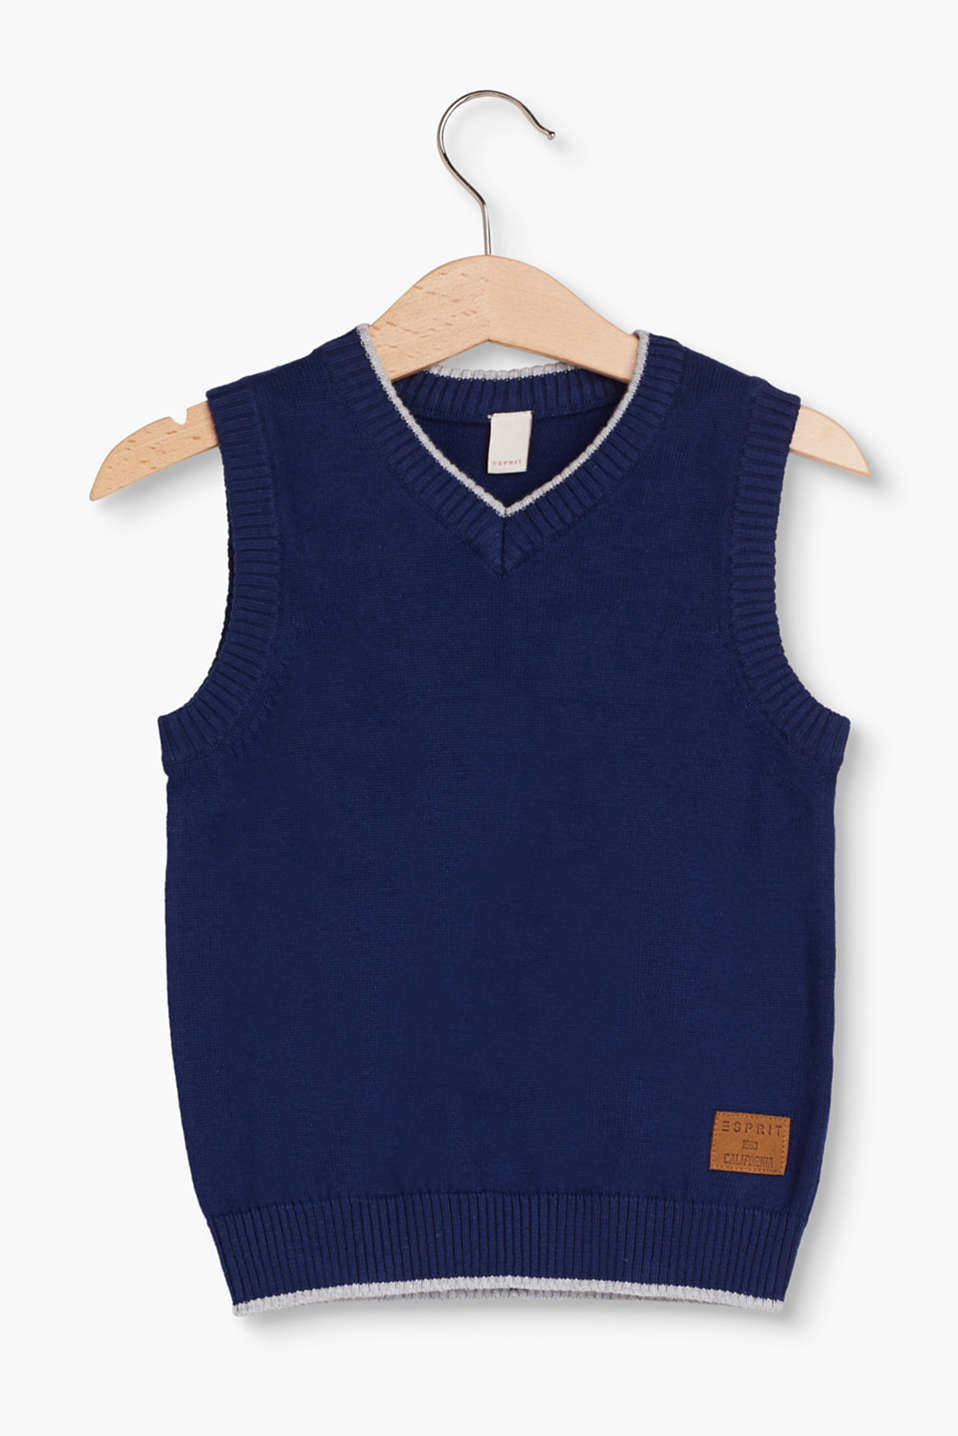 This soft knit vest in comfortable pure cotton is a great basic piece for between the seasons and for winter